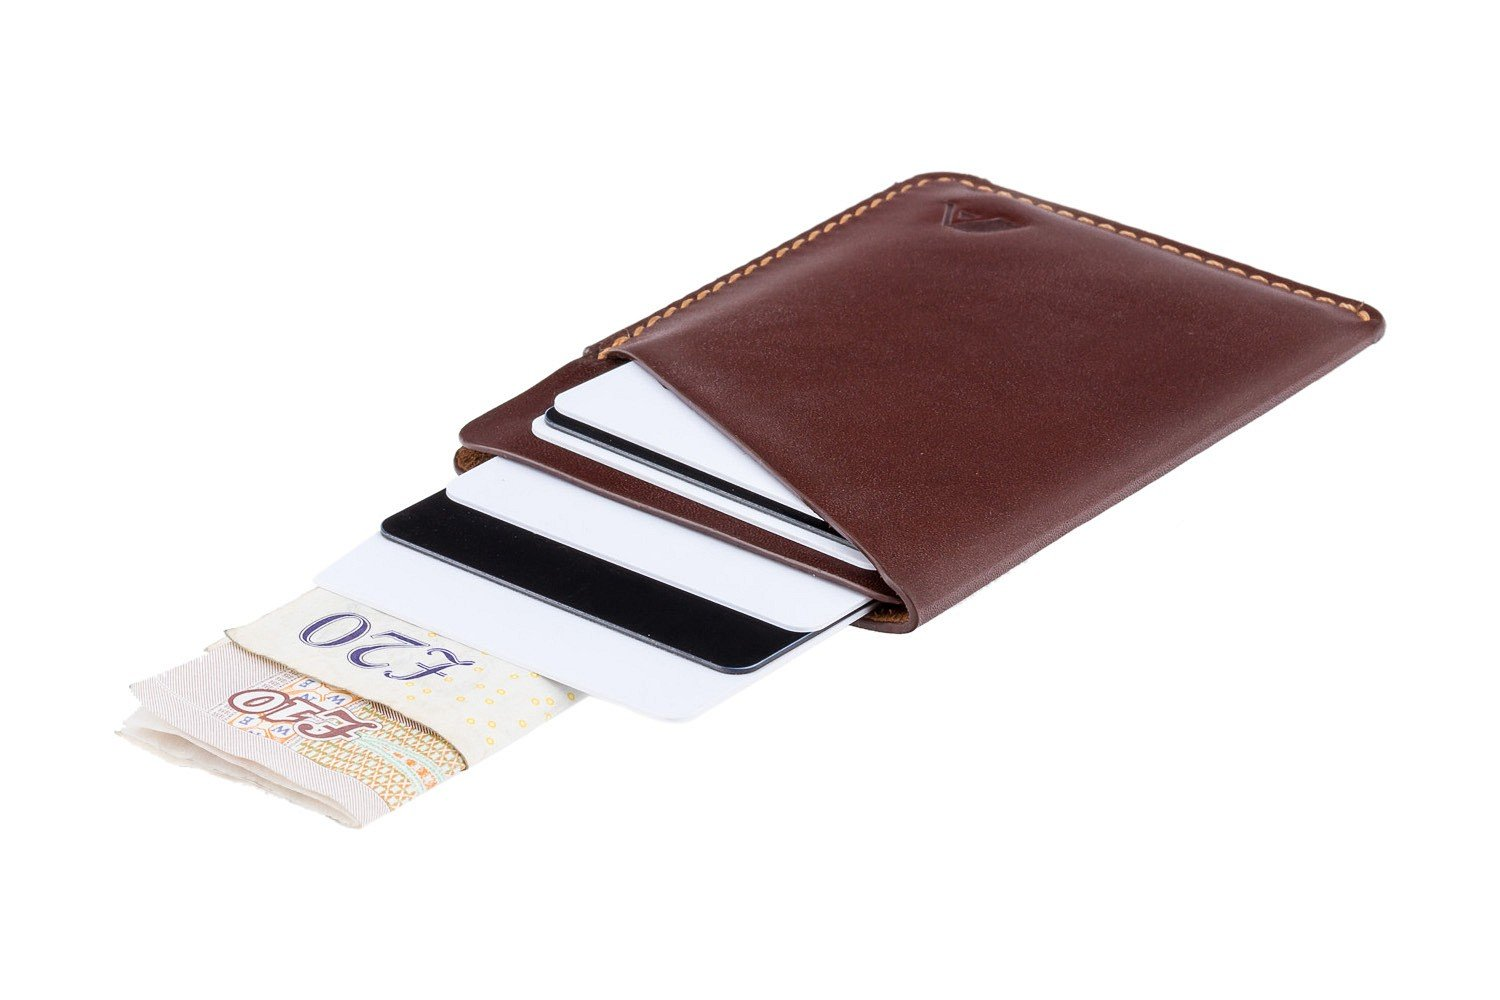 A-SLIM Ninja Slim Card Sleeve Leather Wallet for Minimalists - XSW10 (Mahogany Brown)